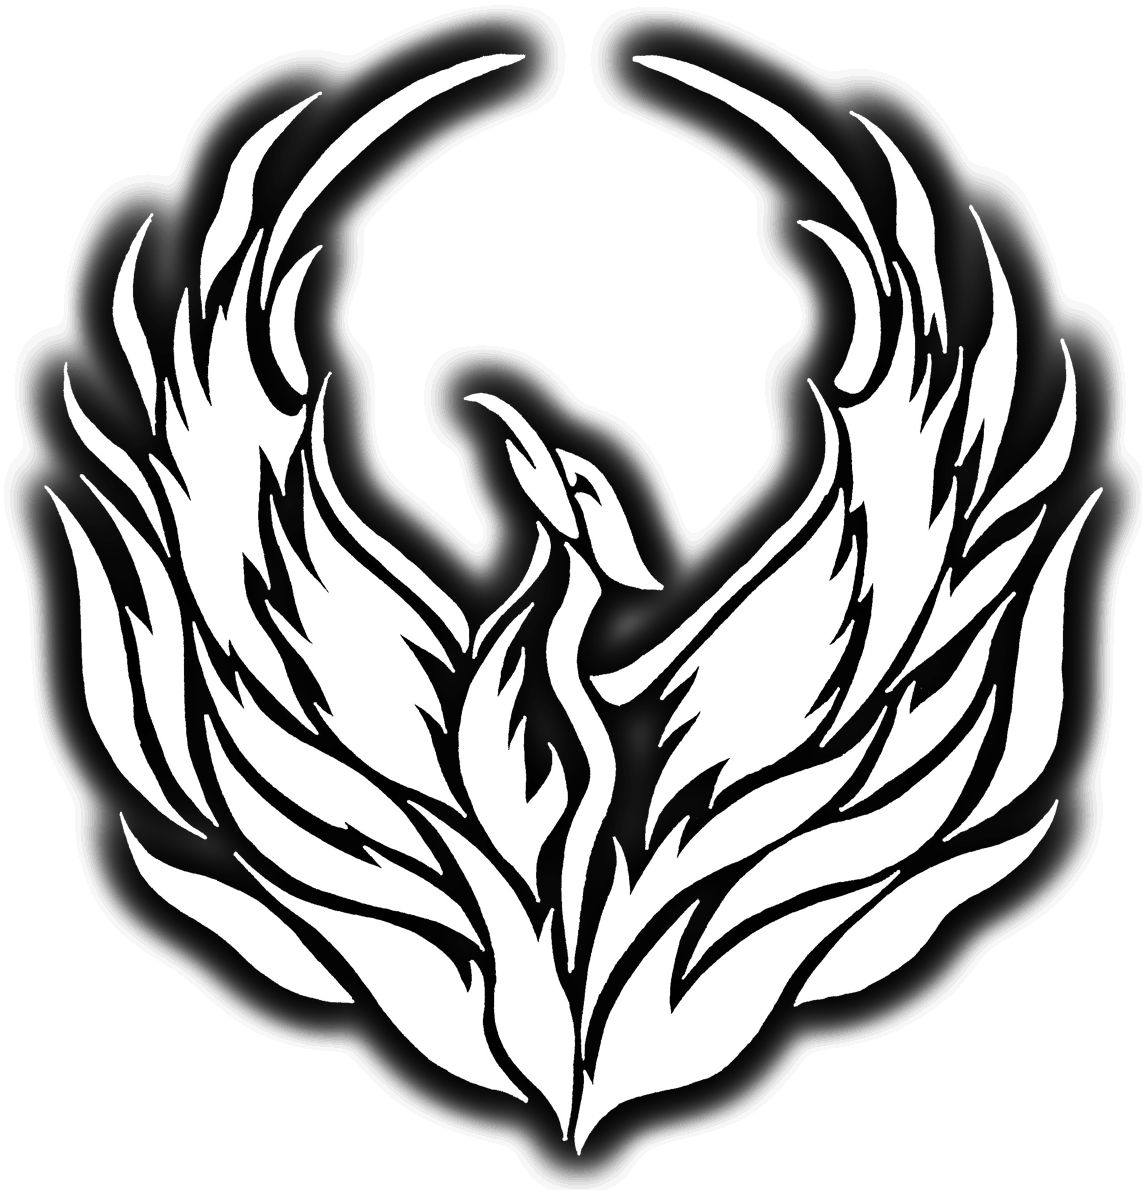 Phoenix drawing png. Home white kung fu